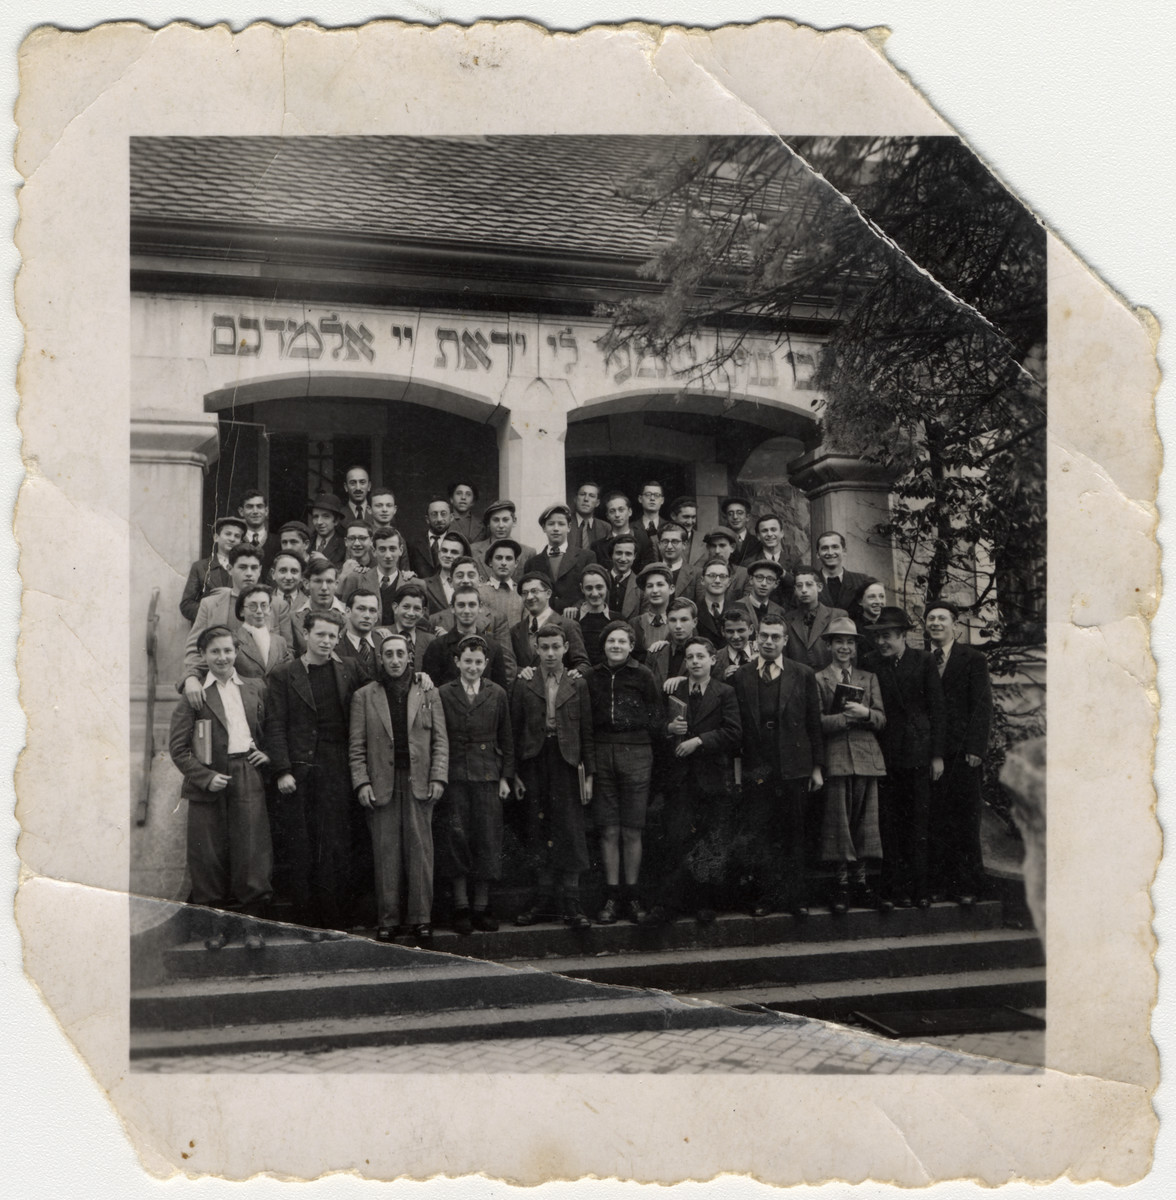 Students pose for a group shot outside the yeshiva in Montreux, Switzerland headed by Rabbi Botchko.  Jacques Klein is sixth from the left.